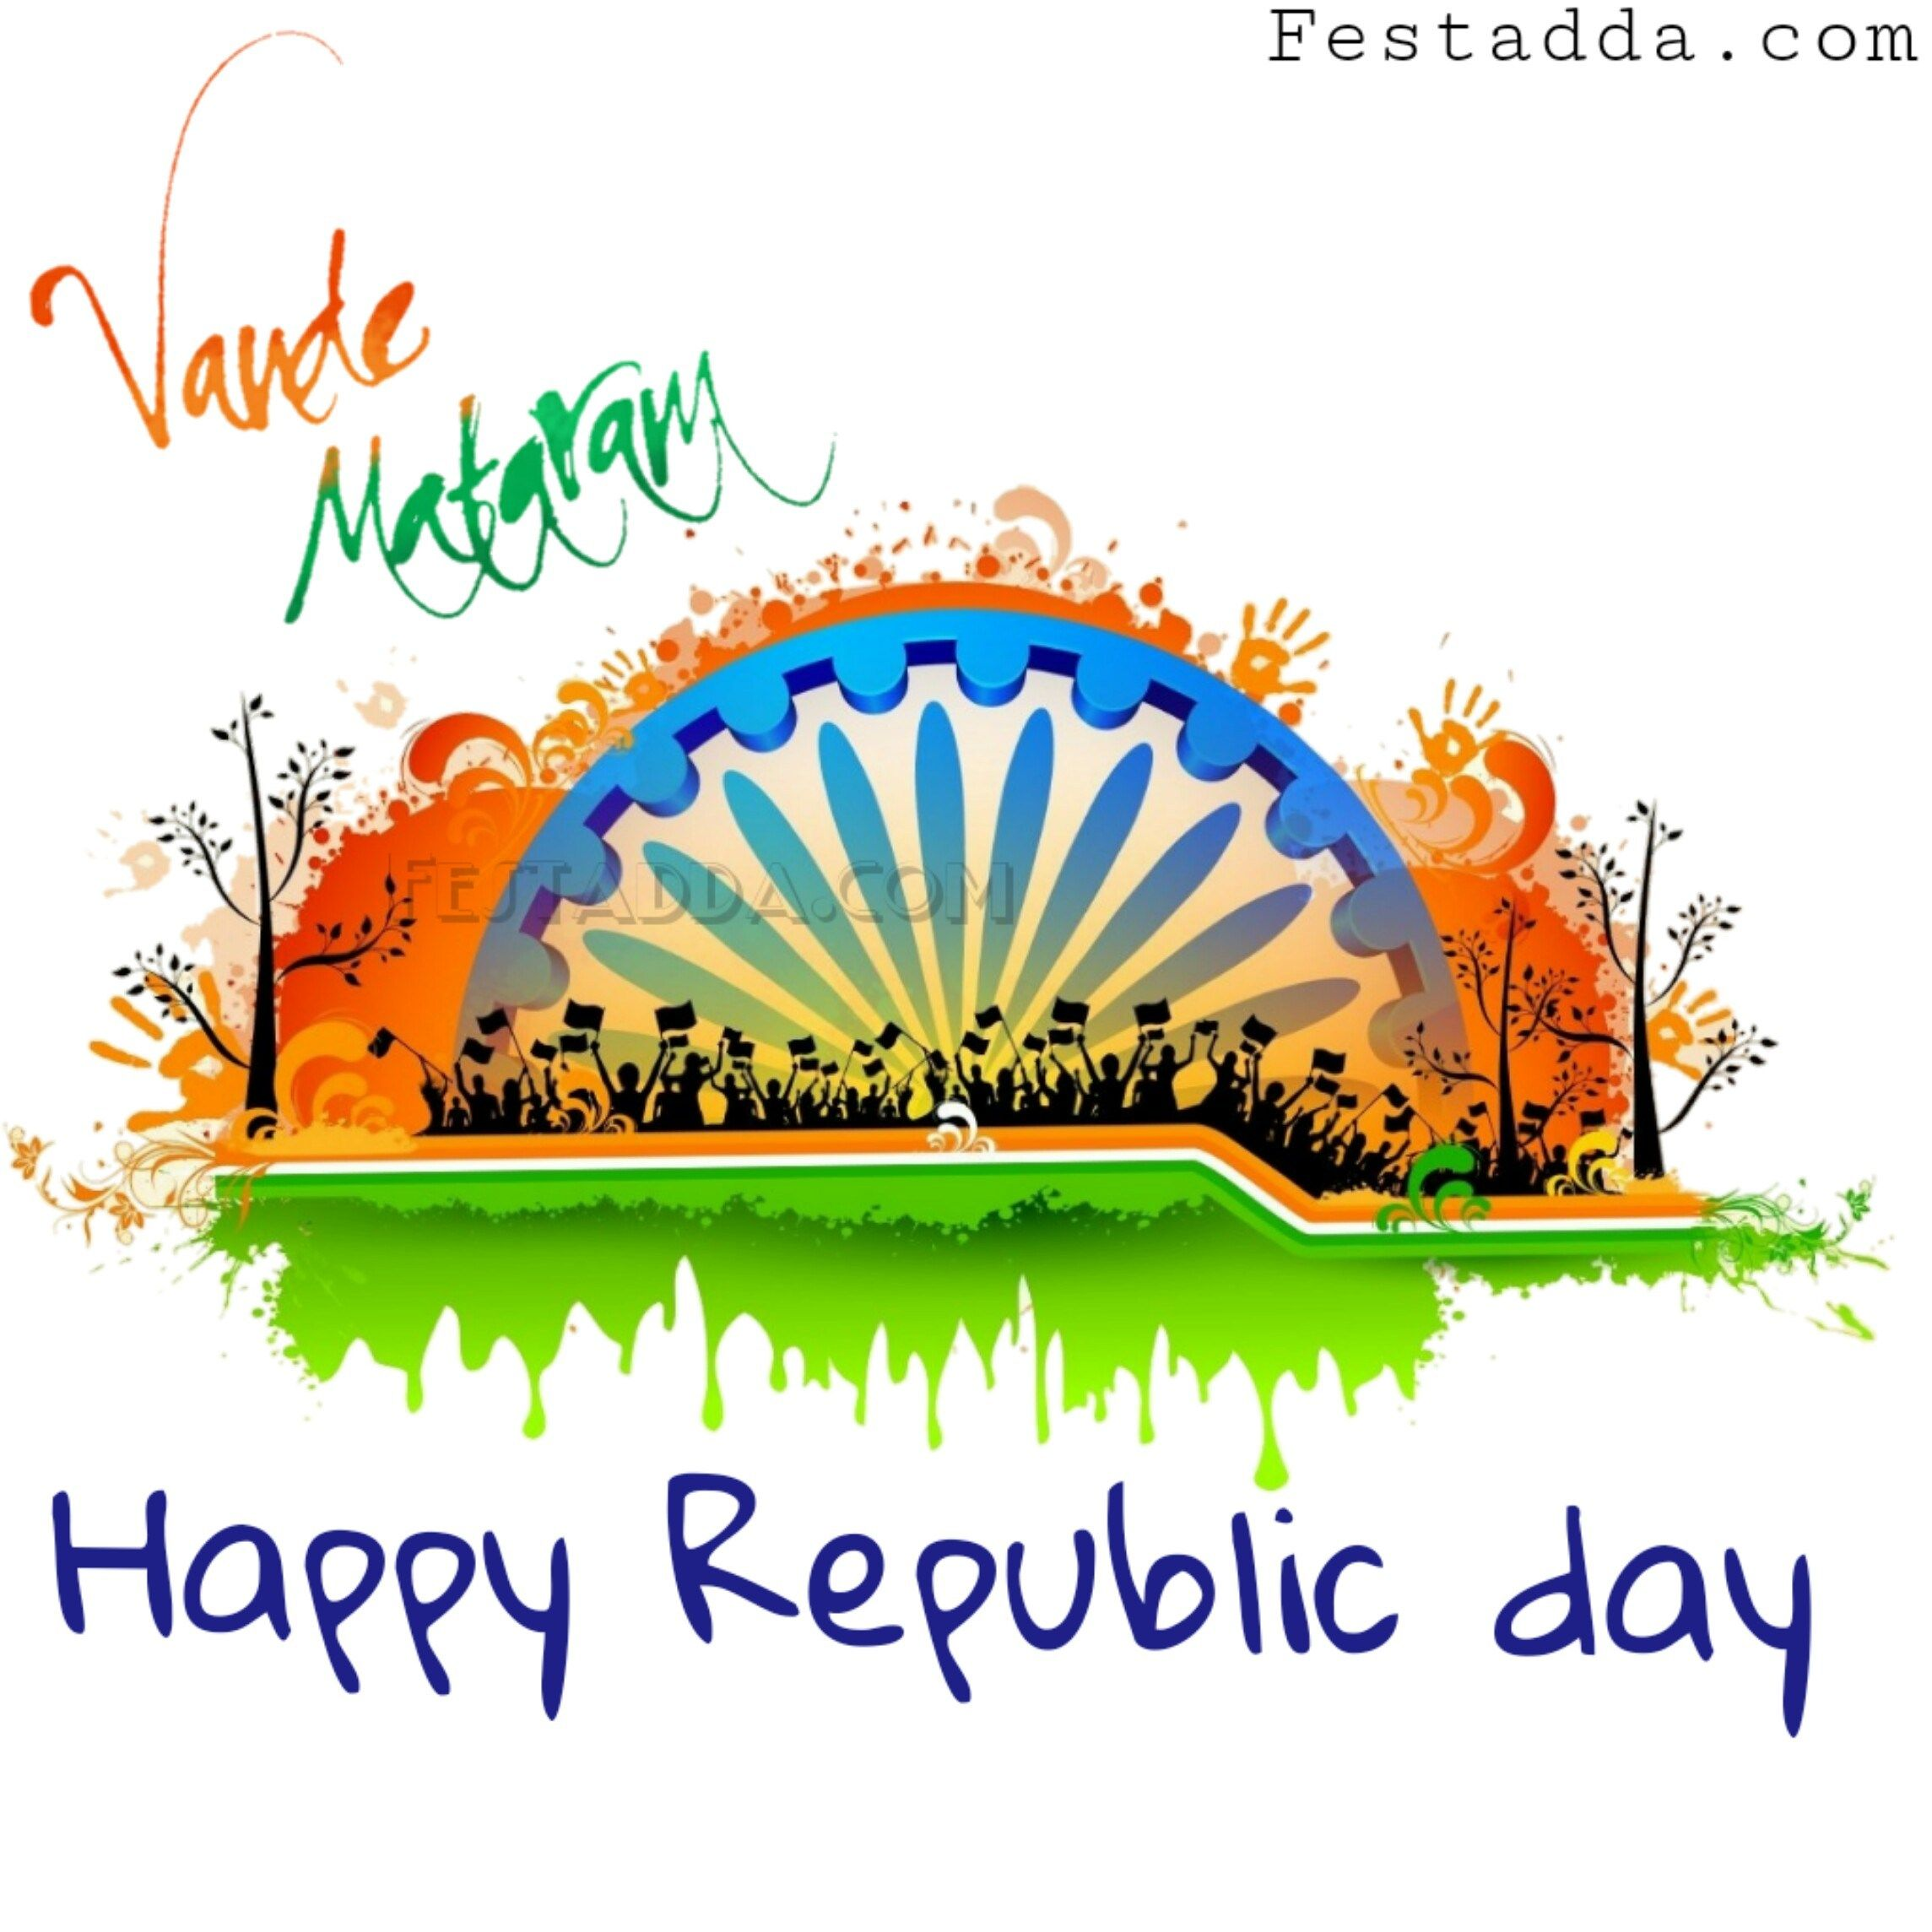 Happy Republic Day 2019 Quotes Gif Files Images Photos Wallpapers Messages Download 26th January Republic Day Indian Flag Wallpaper Independence Day Pictures